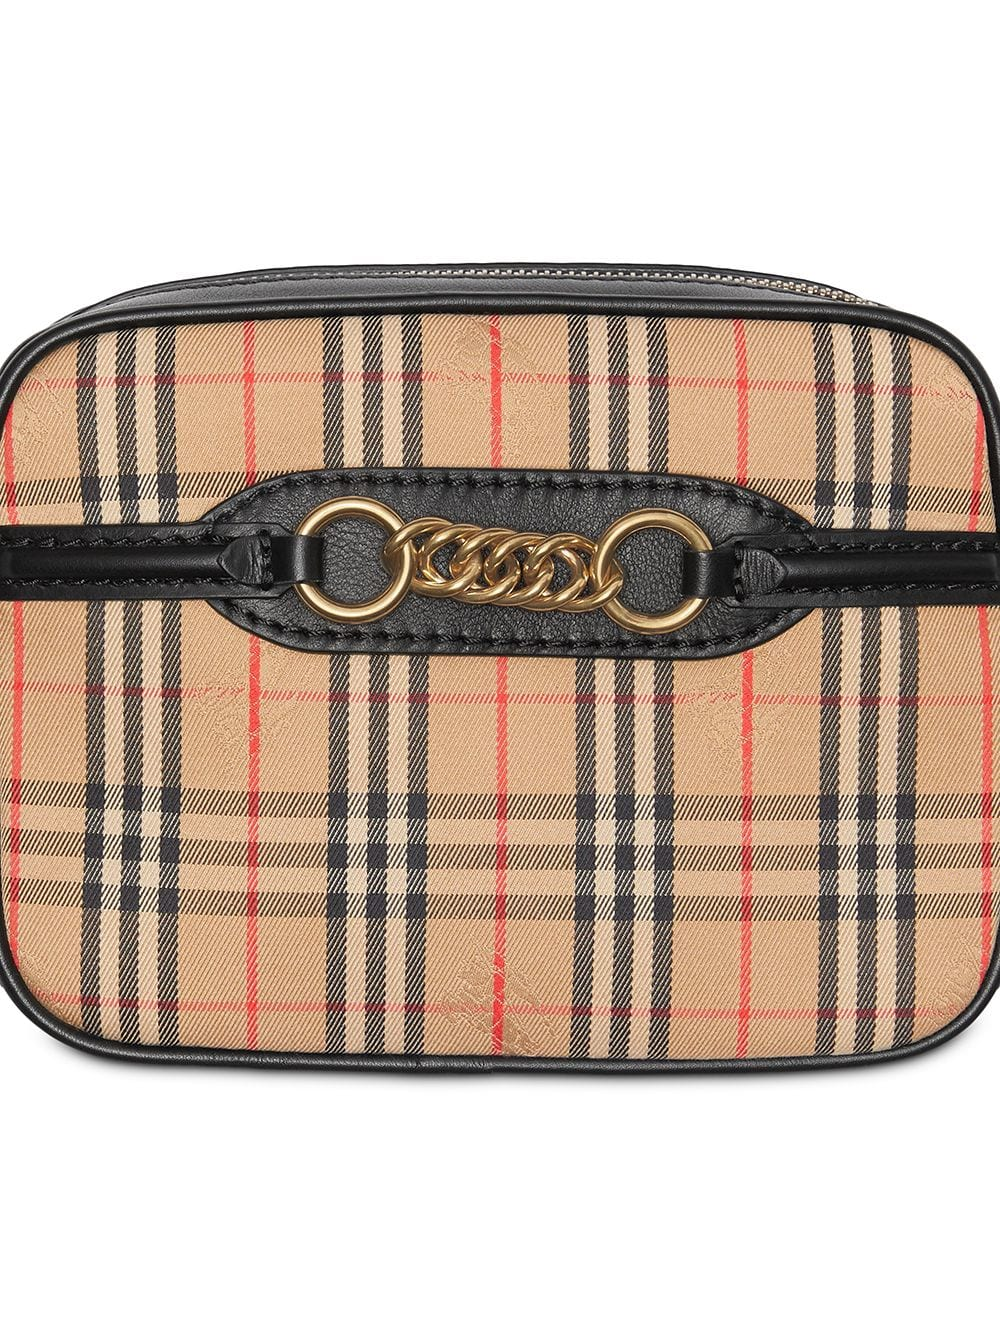 Picture of Burberry | The 1983 Check Link Bum Bag